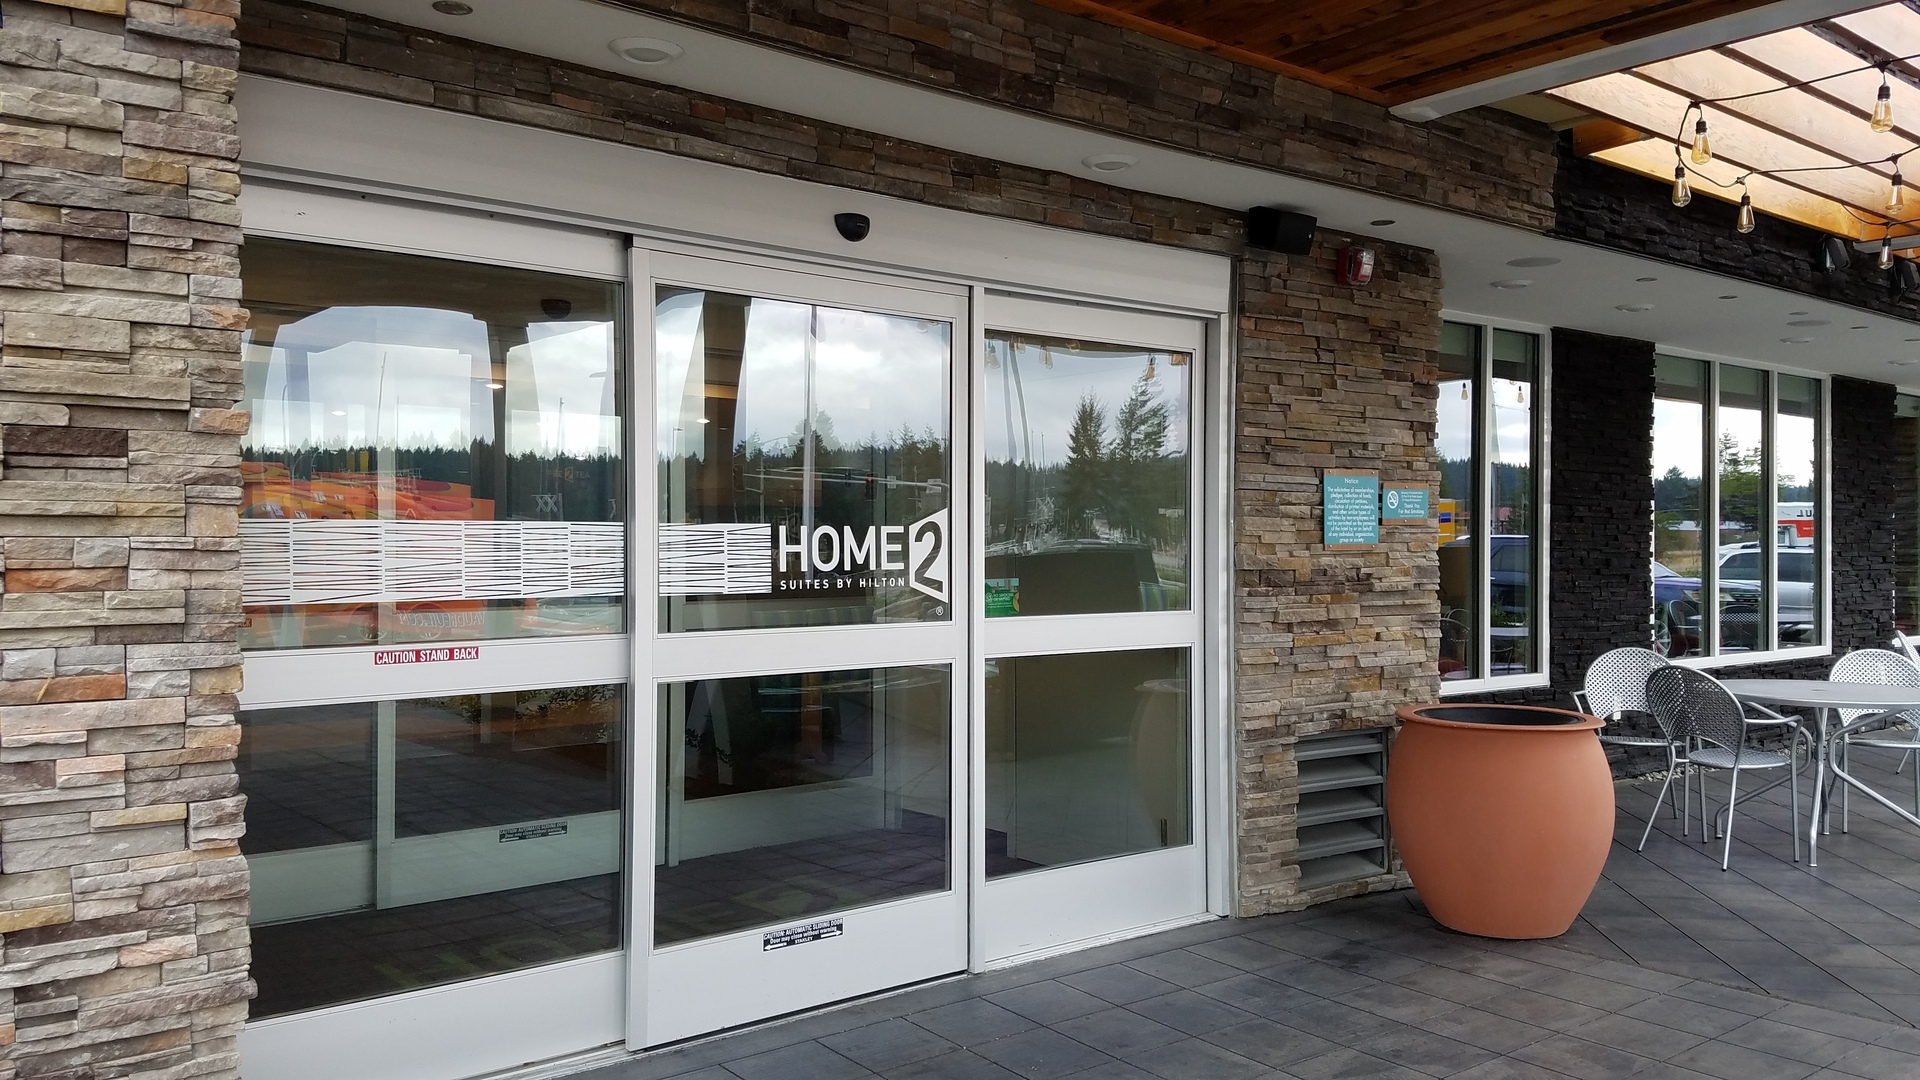 The entrance of Home2Suites by Hilton showcases Pro-Fit® Alpine Ledgestone in Pheasant.